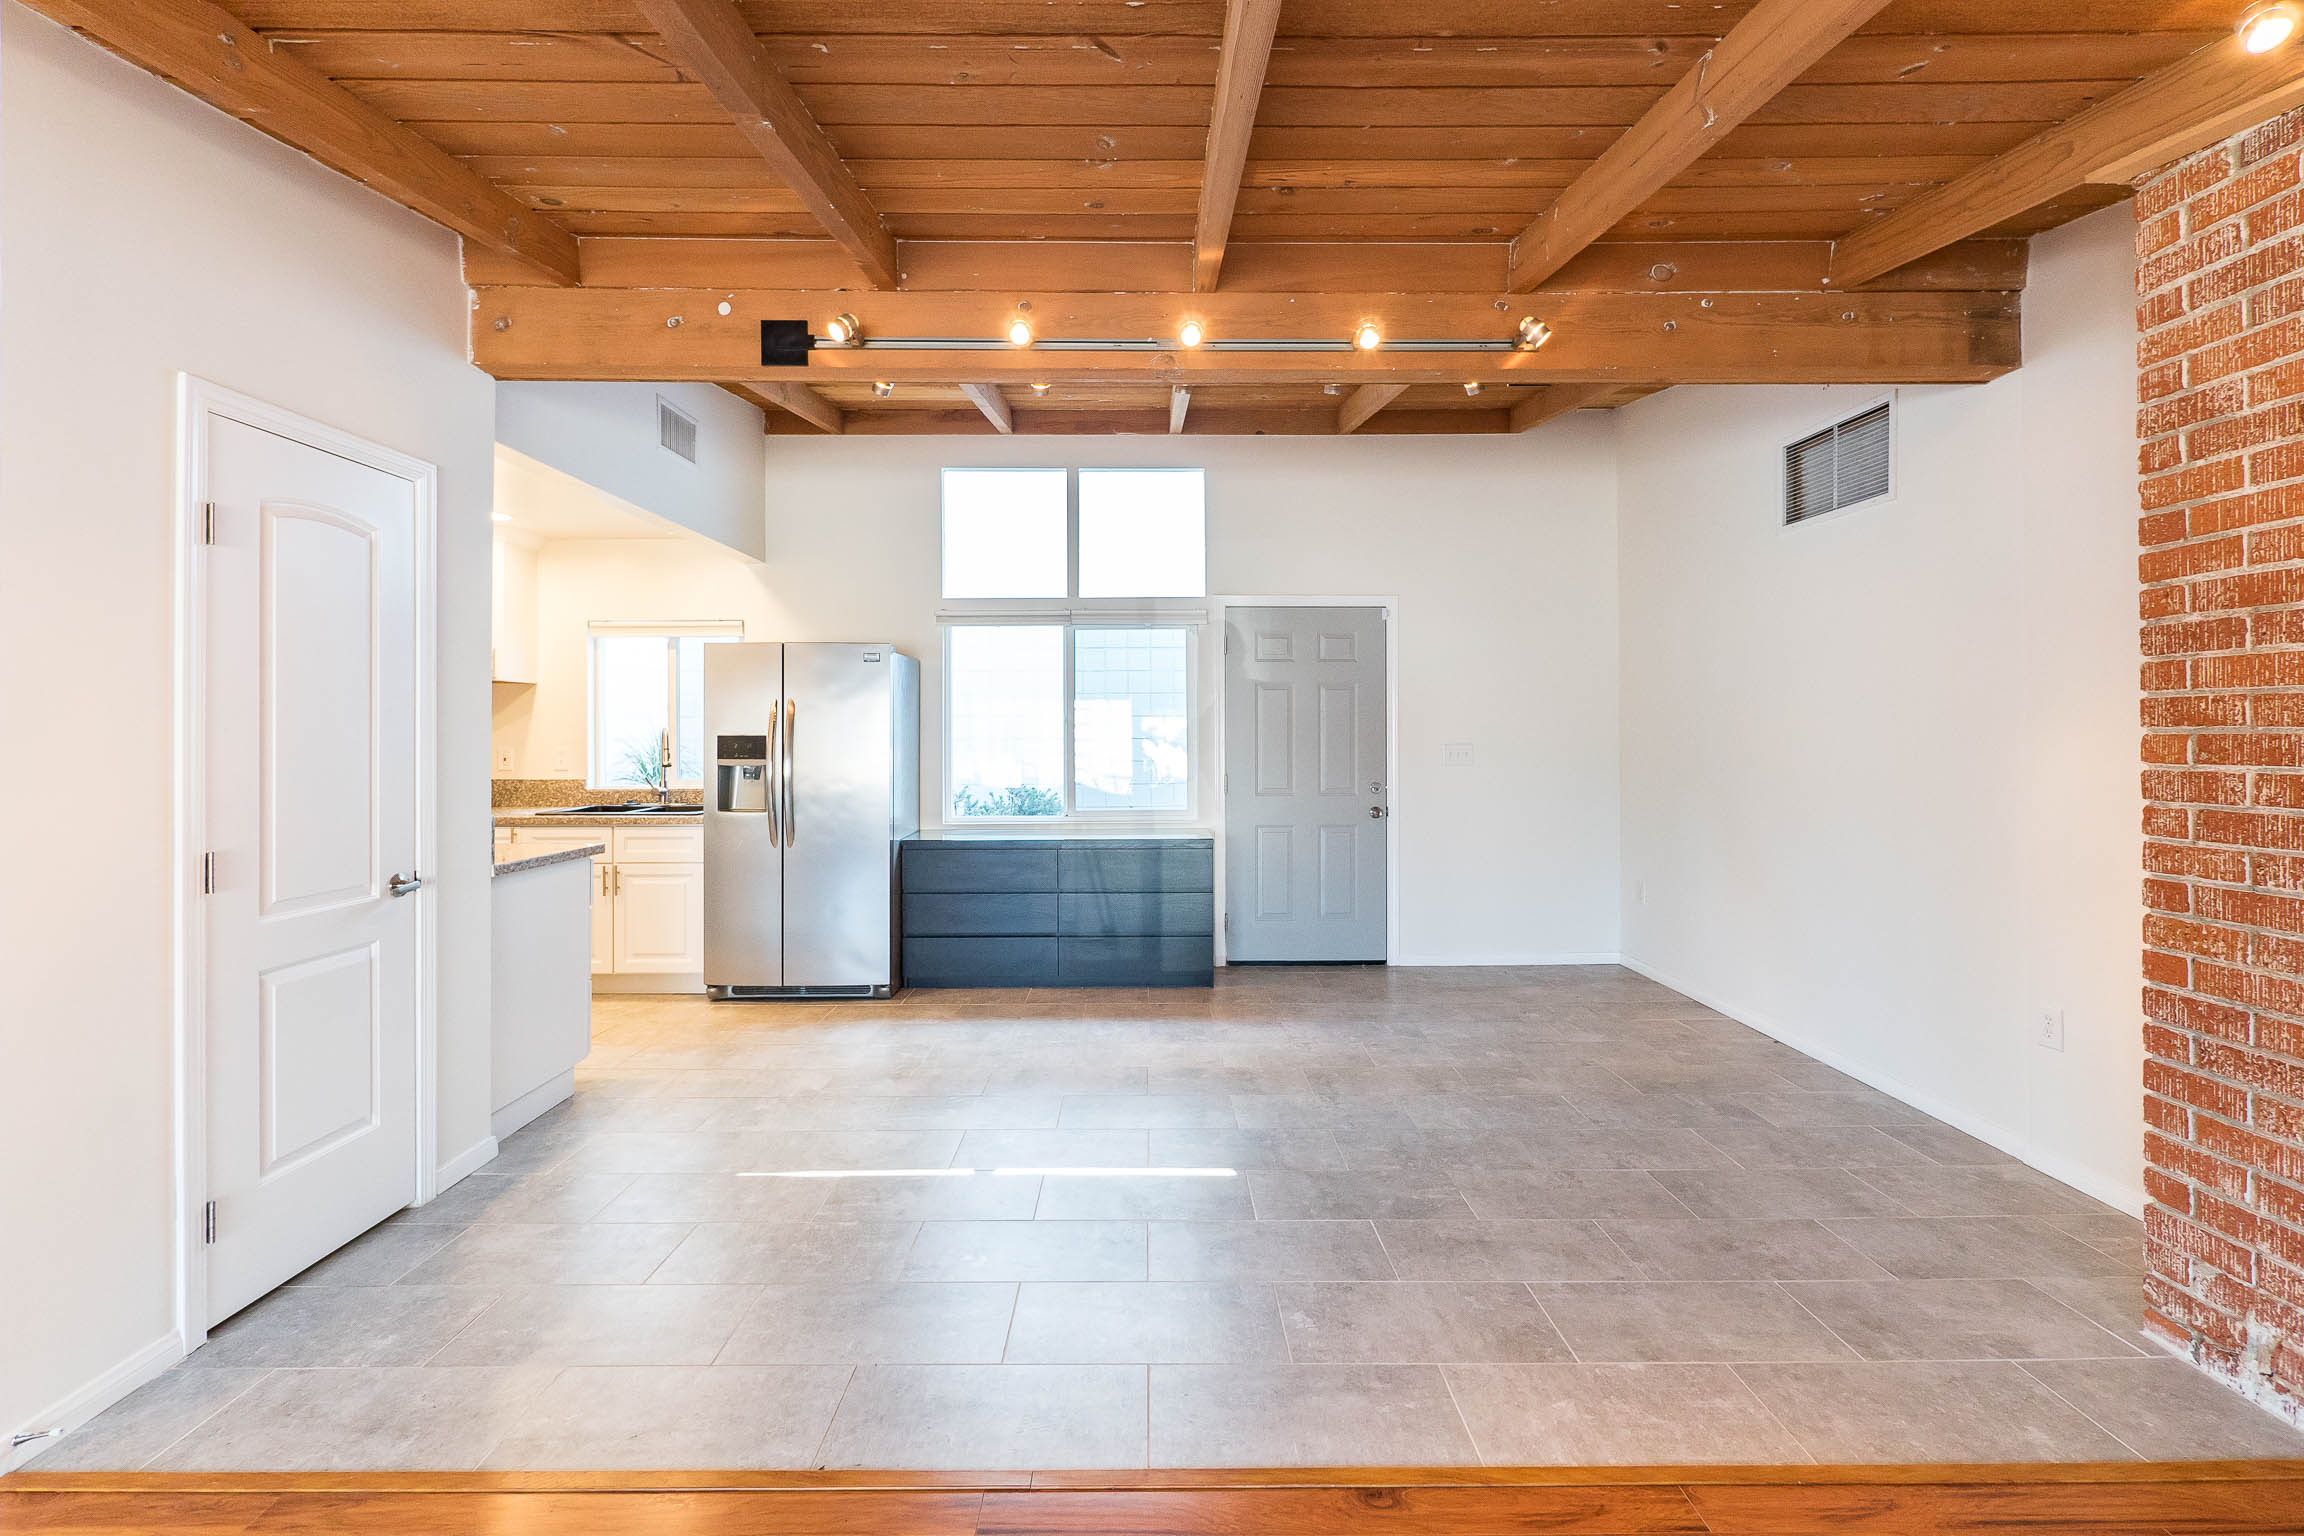 Spectacular 2/2 w Beamed Ceilings & Brick Fireplace | Move to DTLA's next Art's District